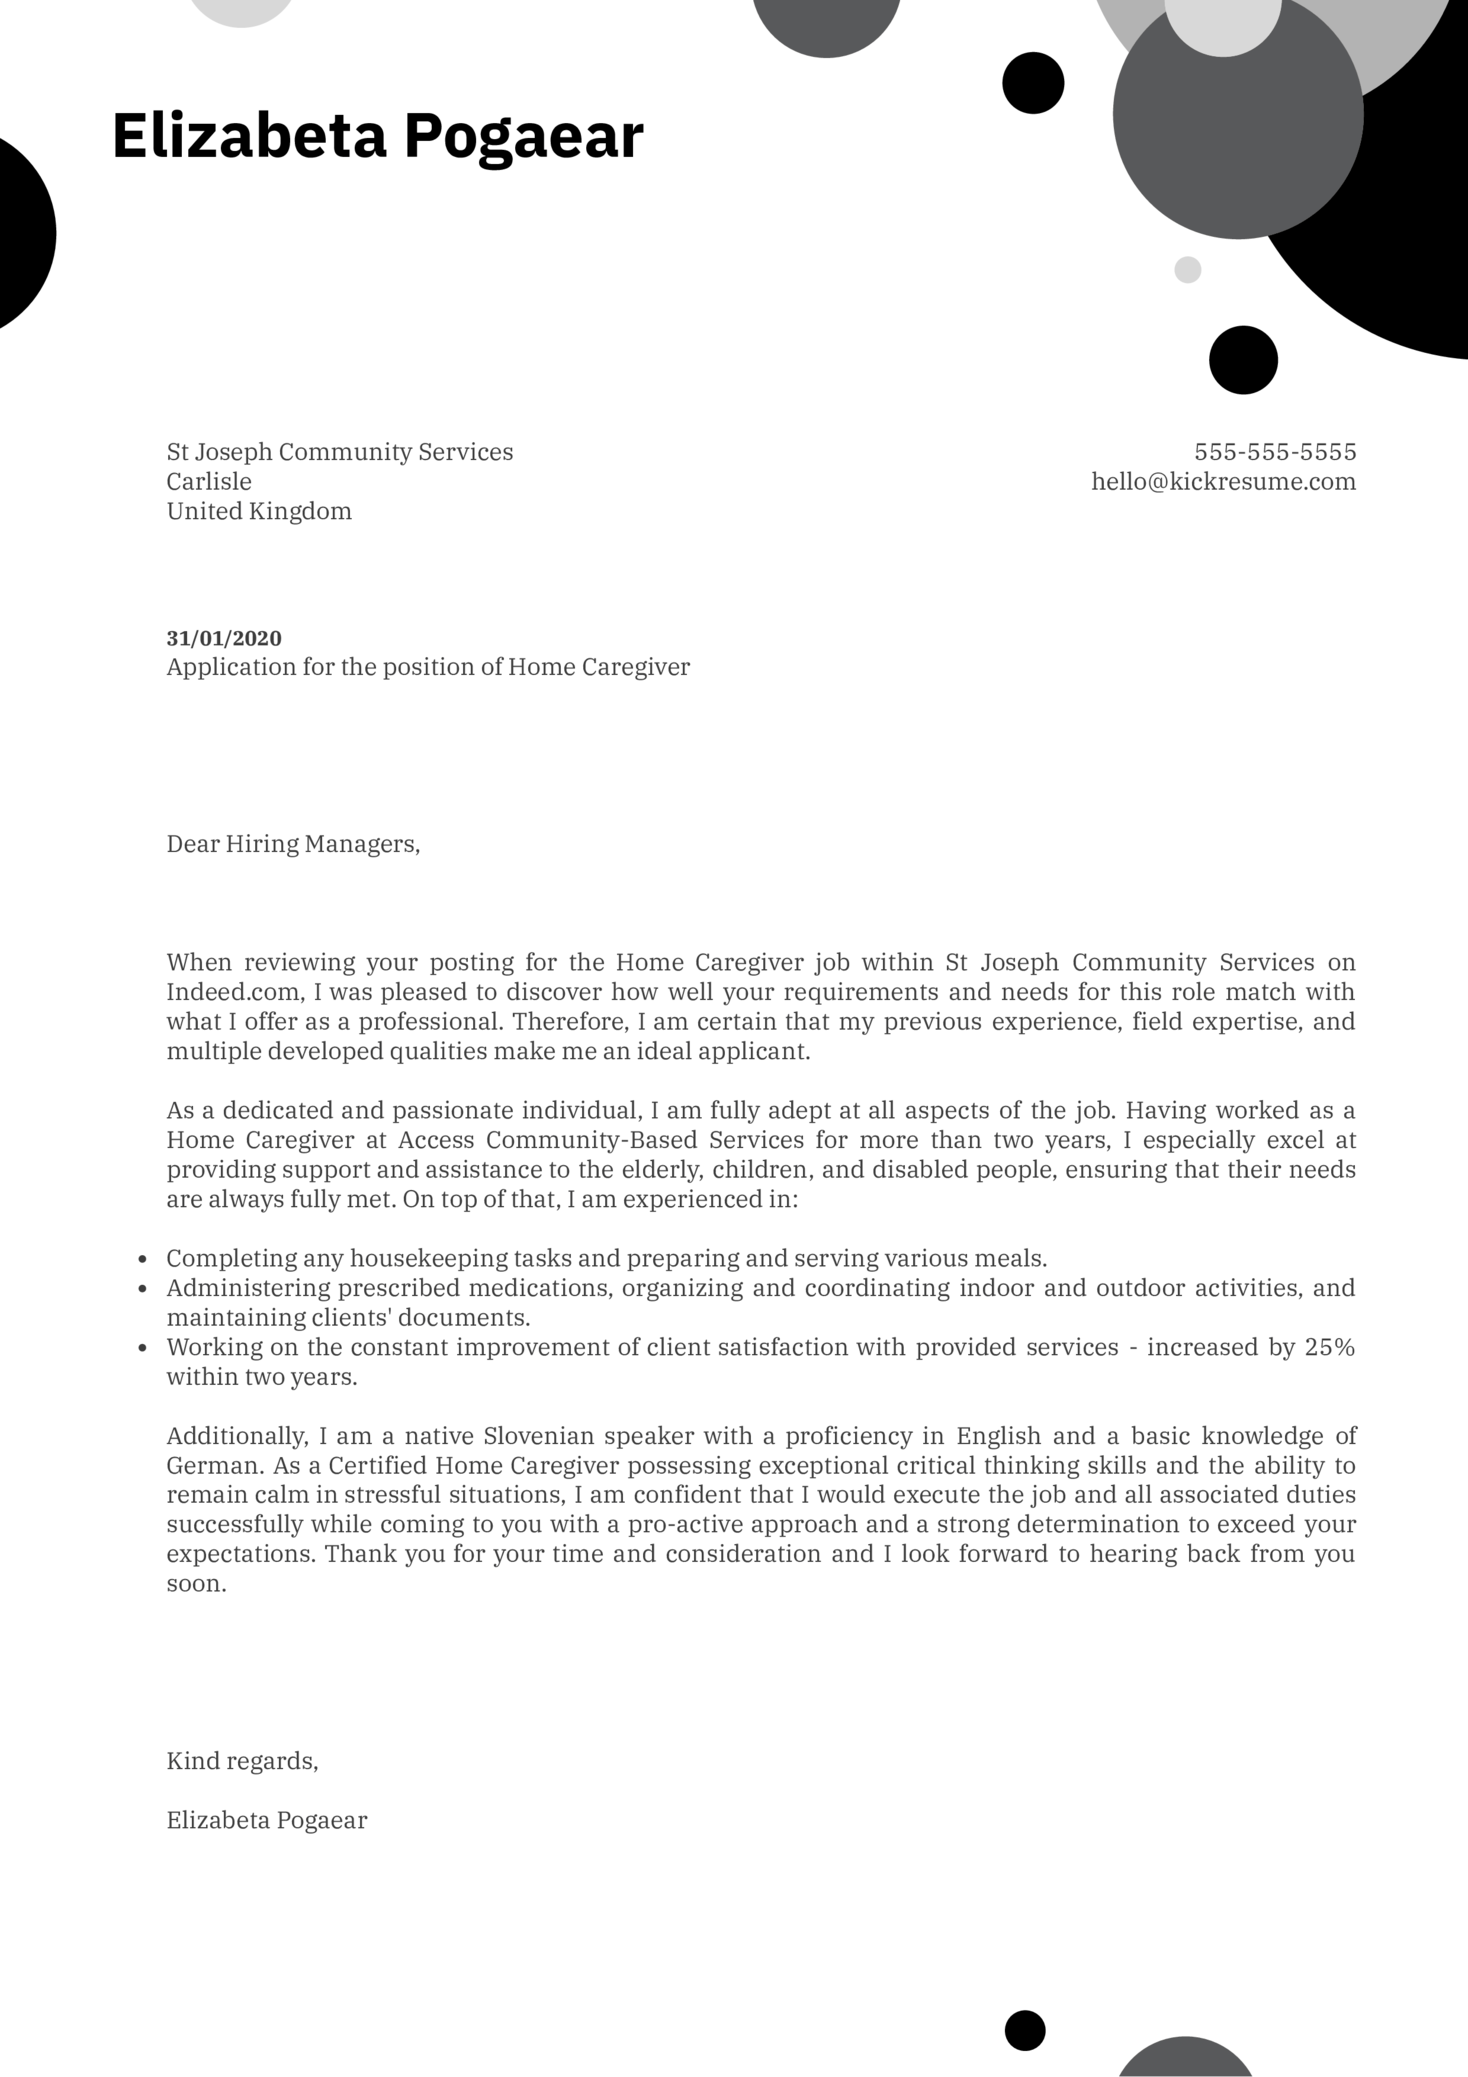 Home Caregiver Cover Letter Example